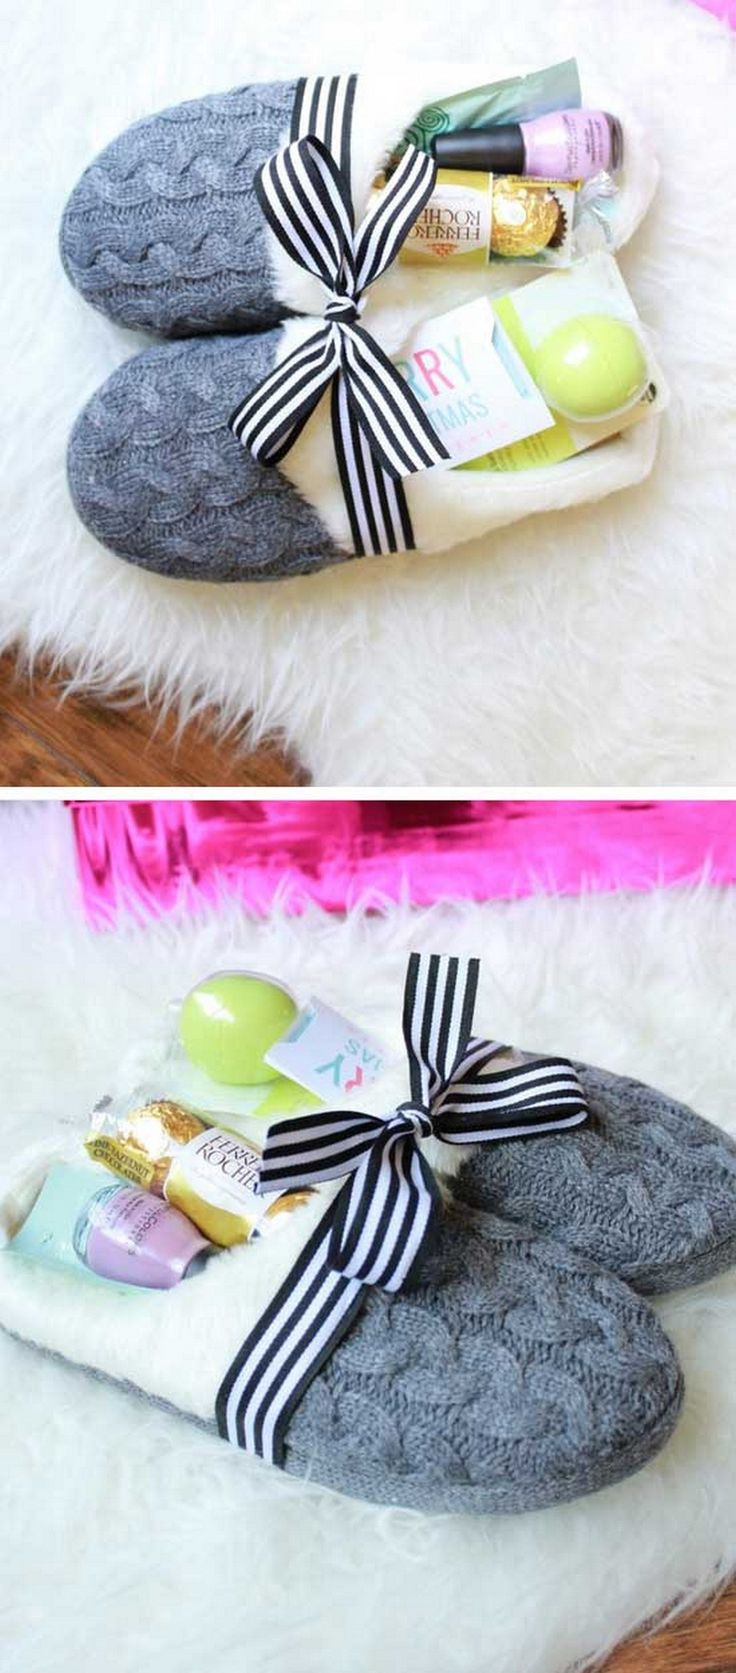 Best ideas about DIY Christmas Gift . Save or Pin Best 25 Diy best friend ts ideas on Pinterest Now.